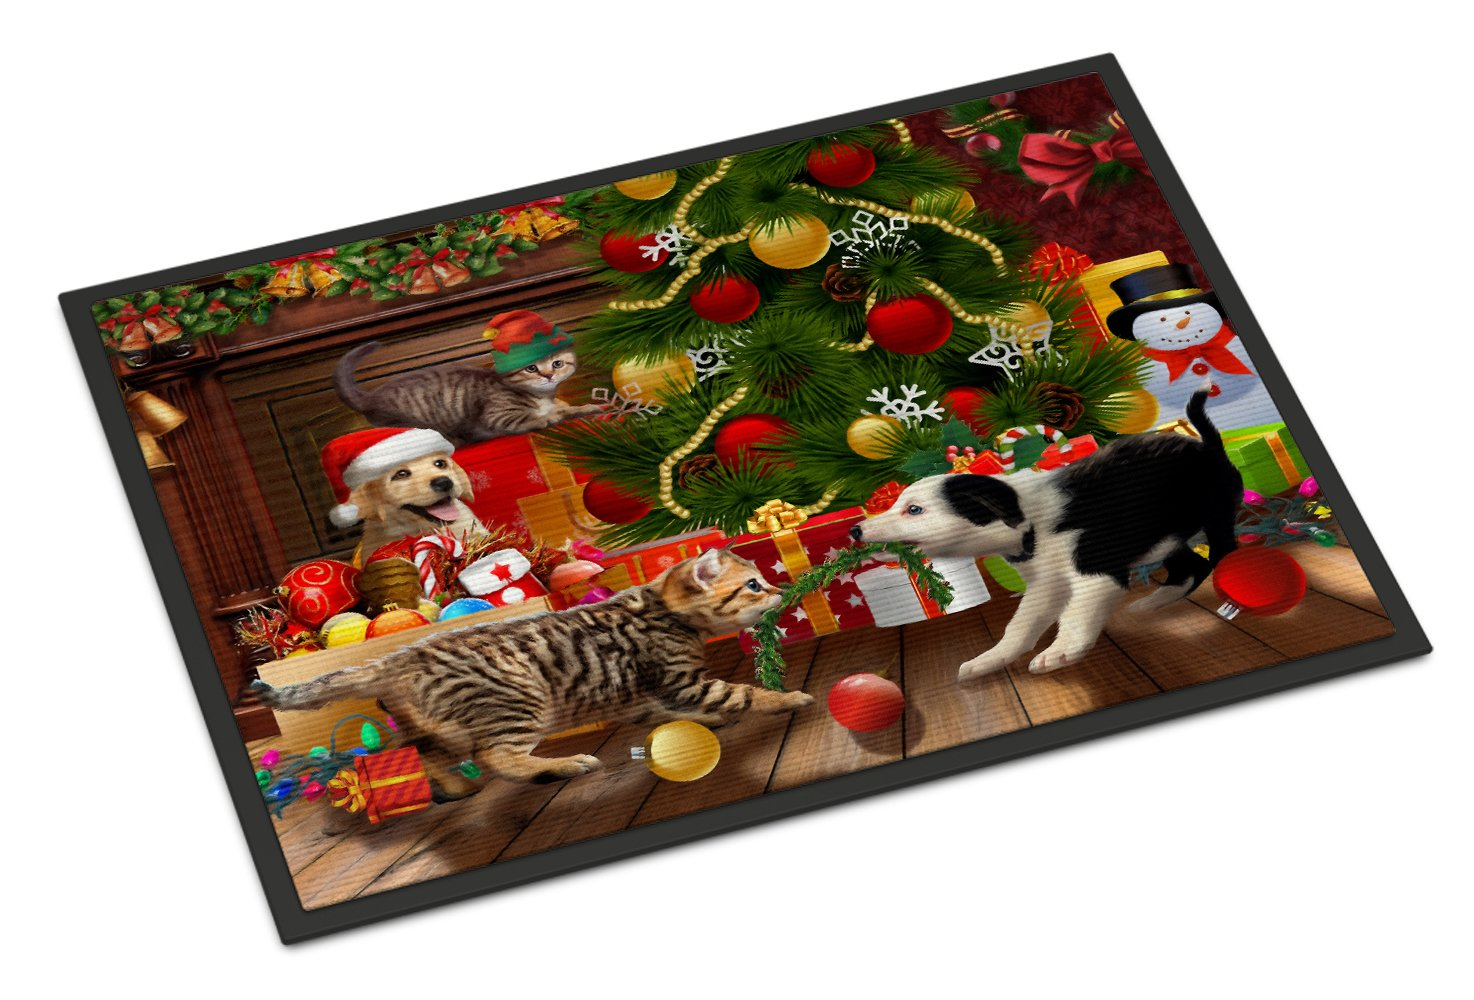 Holiday A Little Christmas Fun Yellow Lab Indoor or Outdoor Mat 24x36 PTW2076JMAT by Caroline's Treasures